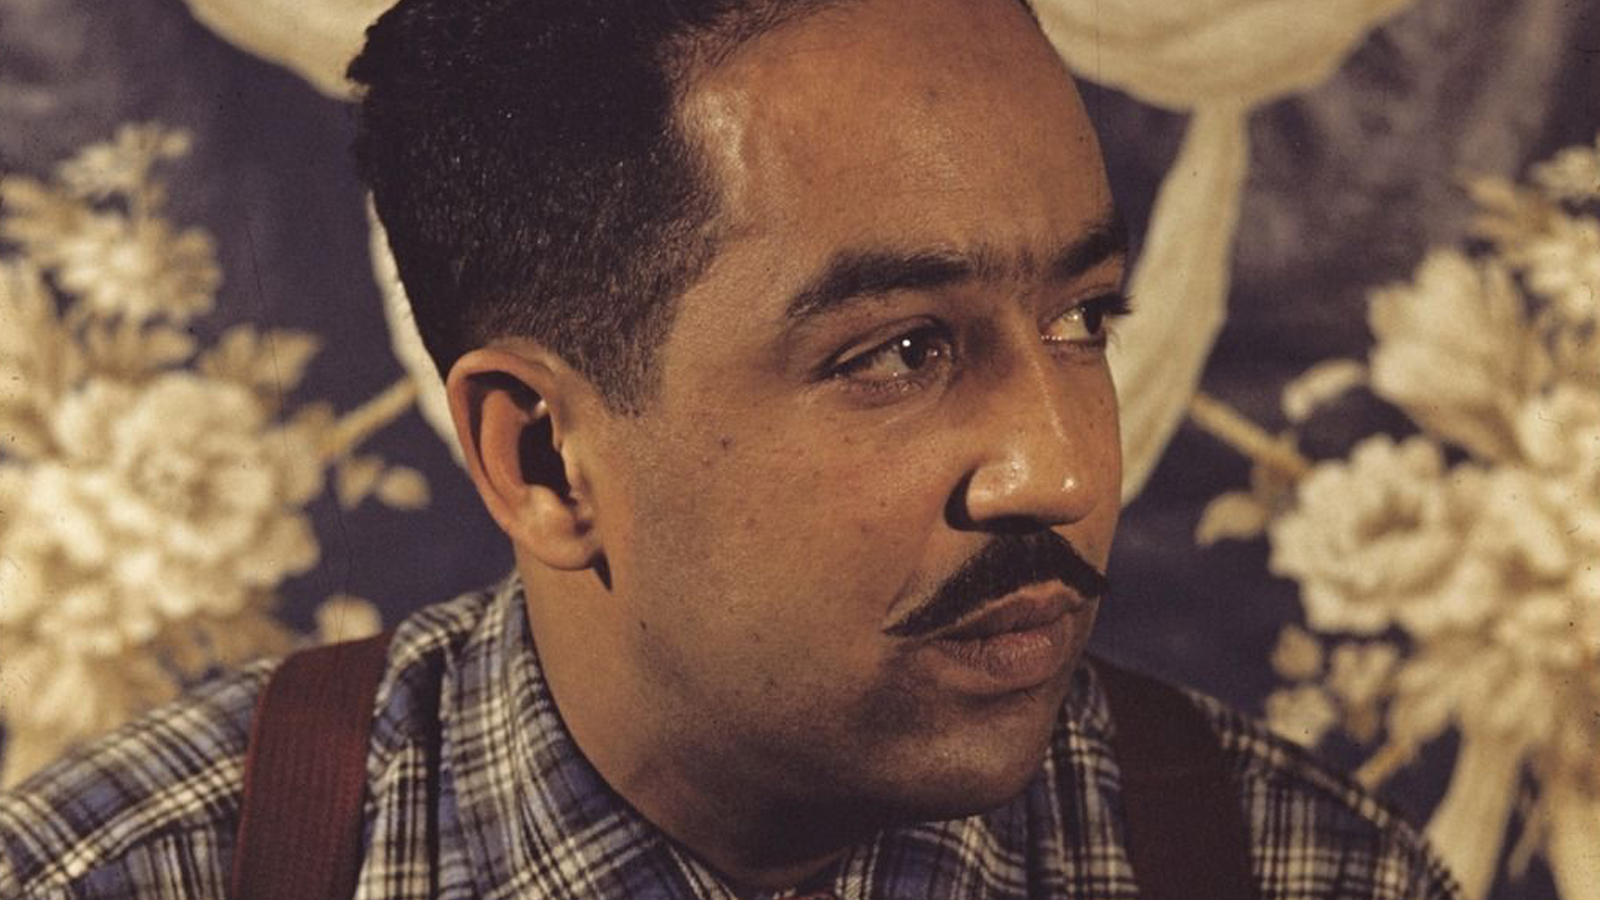 Langston Hughes looking off into the distance